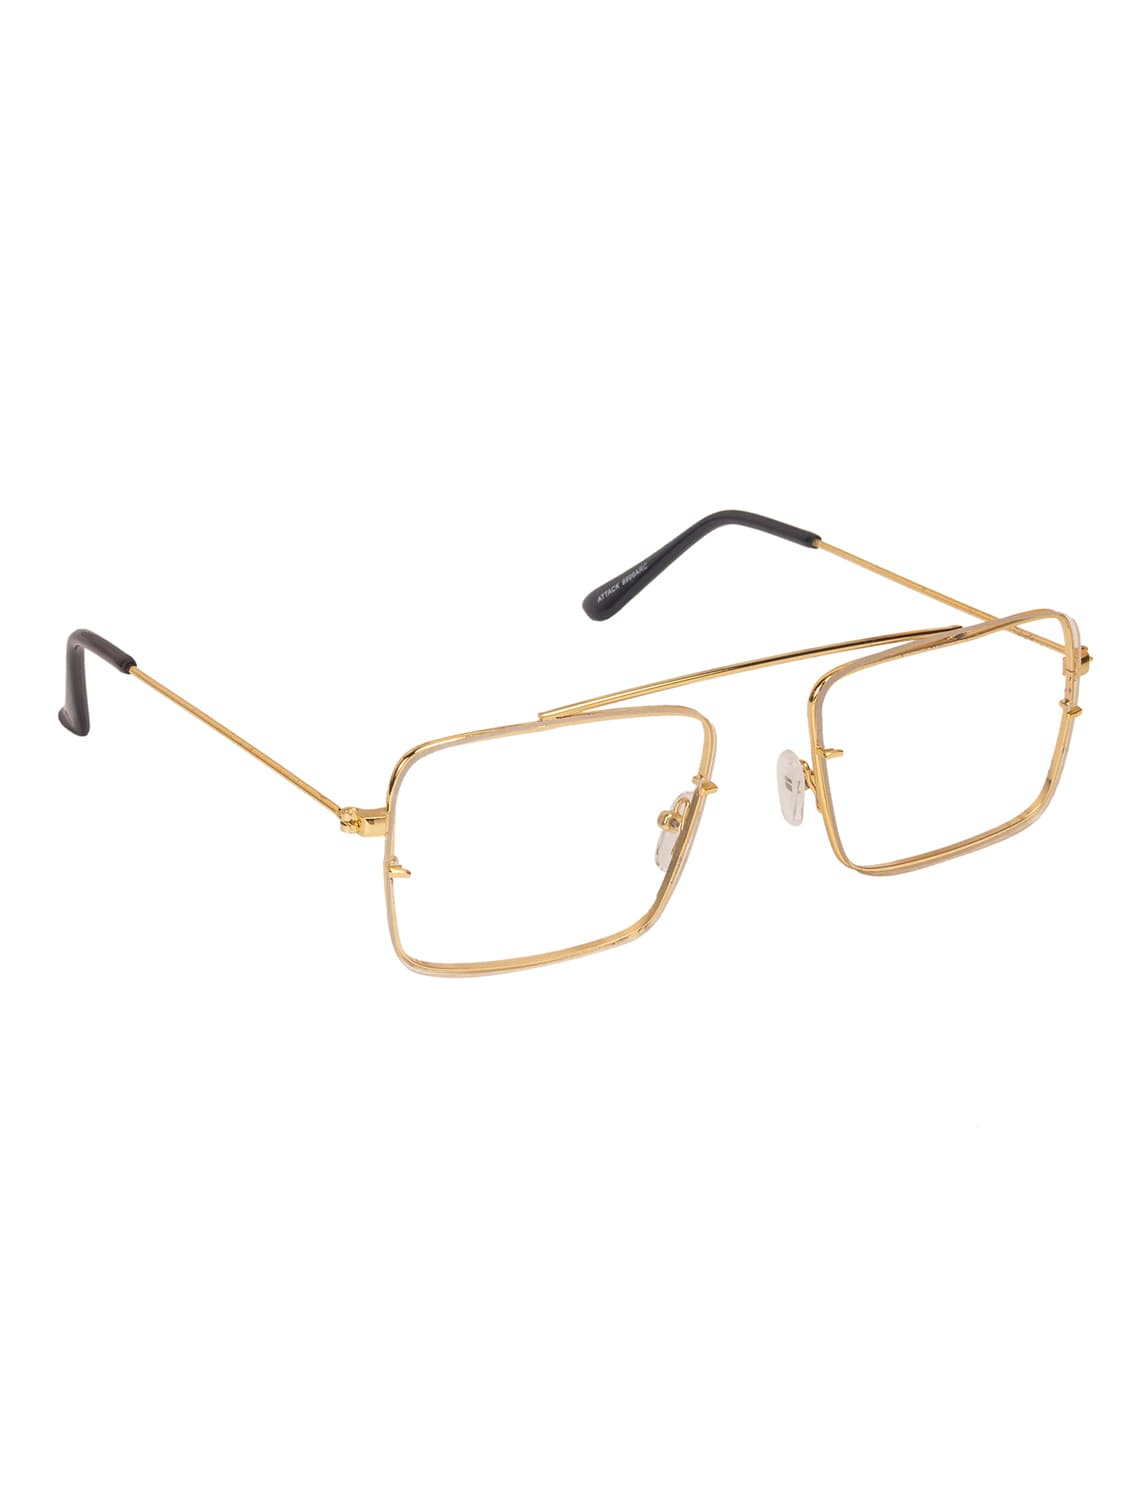 50636e603c2 Buy Arzonai Raees Clear Rectangle Shape Uv Protected Sunglasses For Men s  (ma-9999-s2) for Women from Arzonai for ₹367 at 72% off